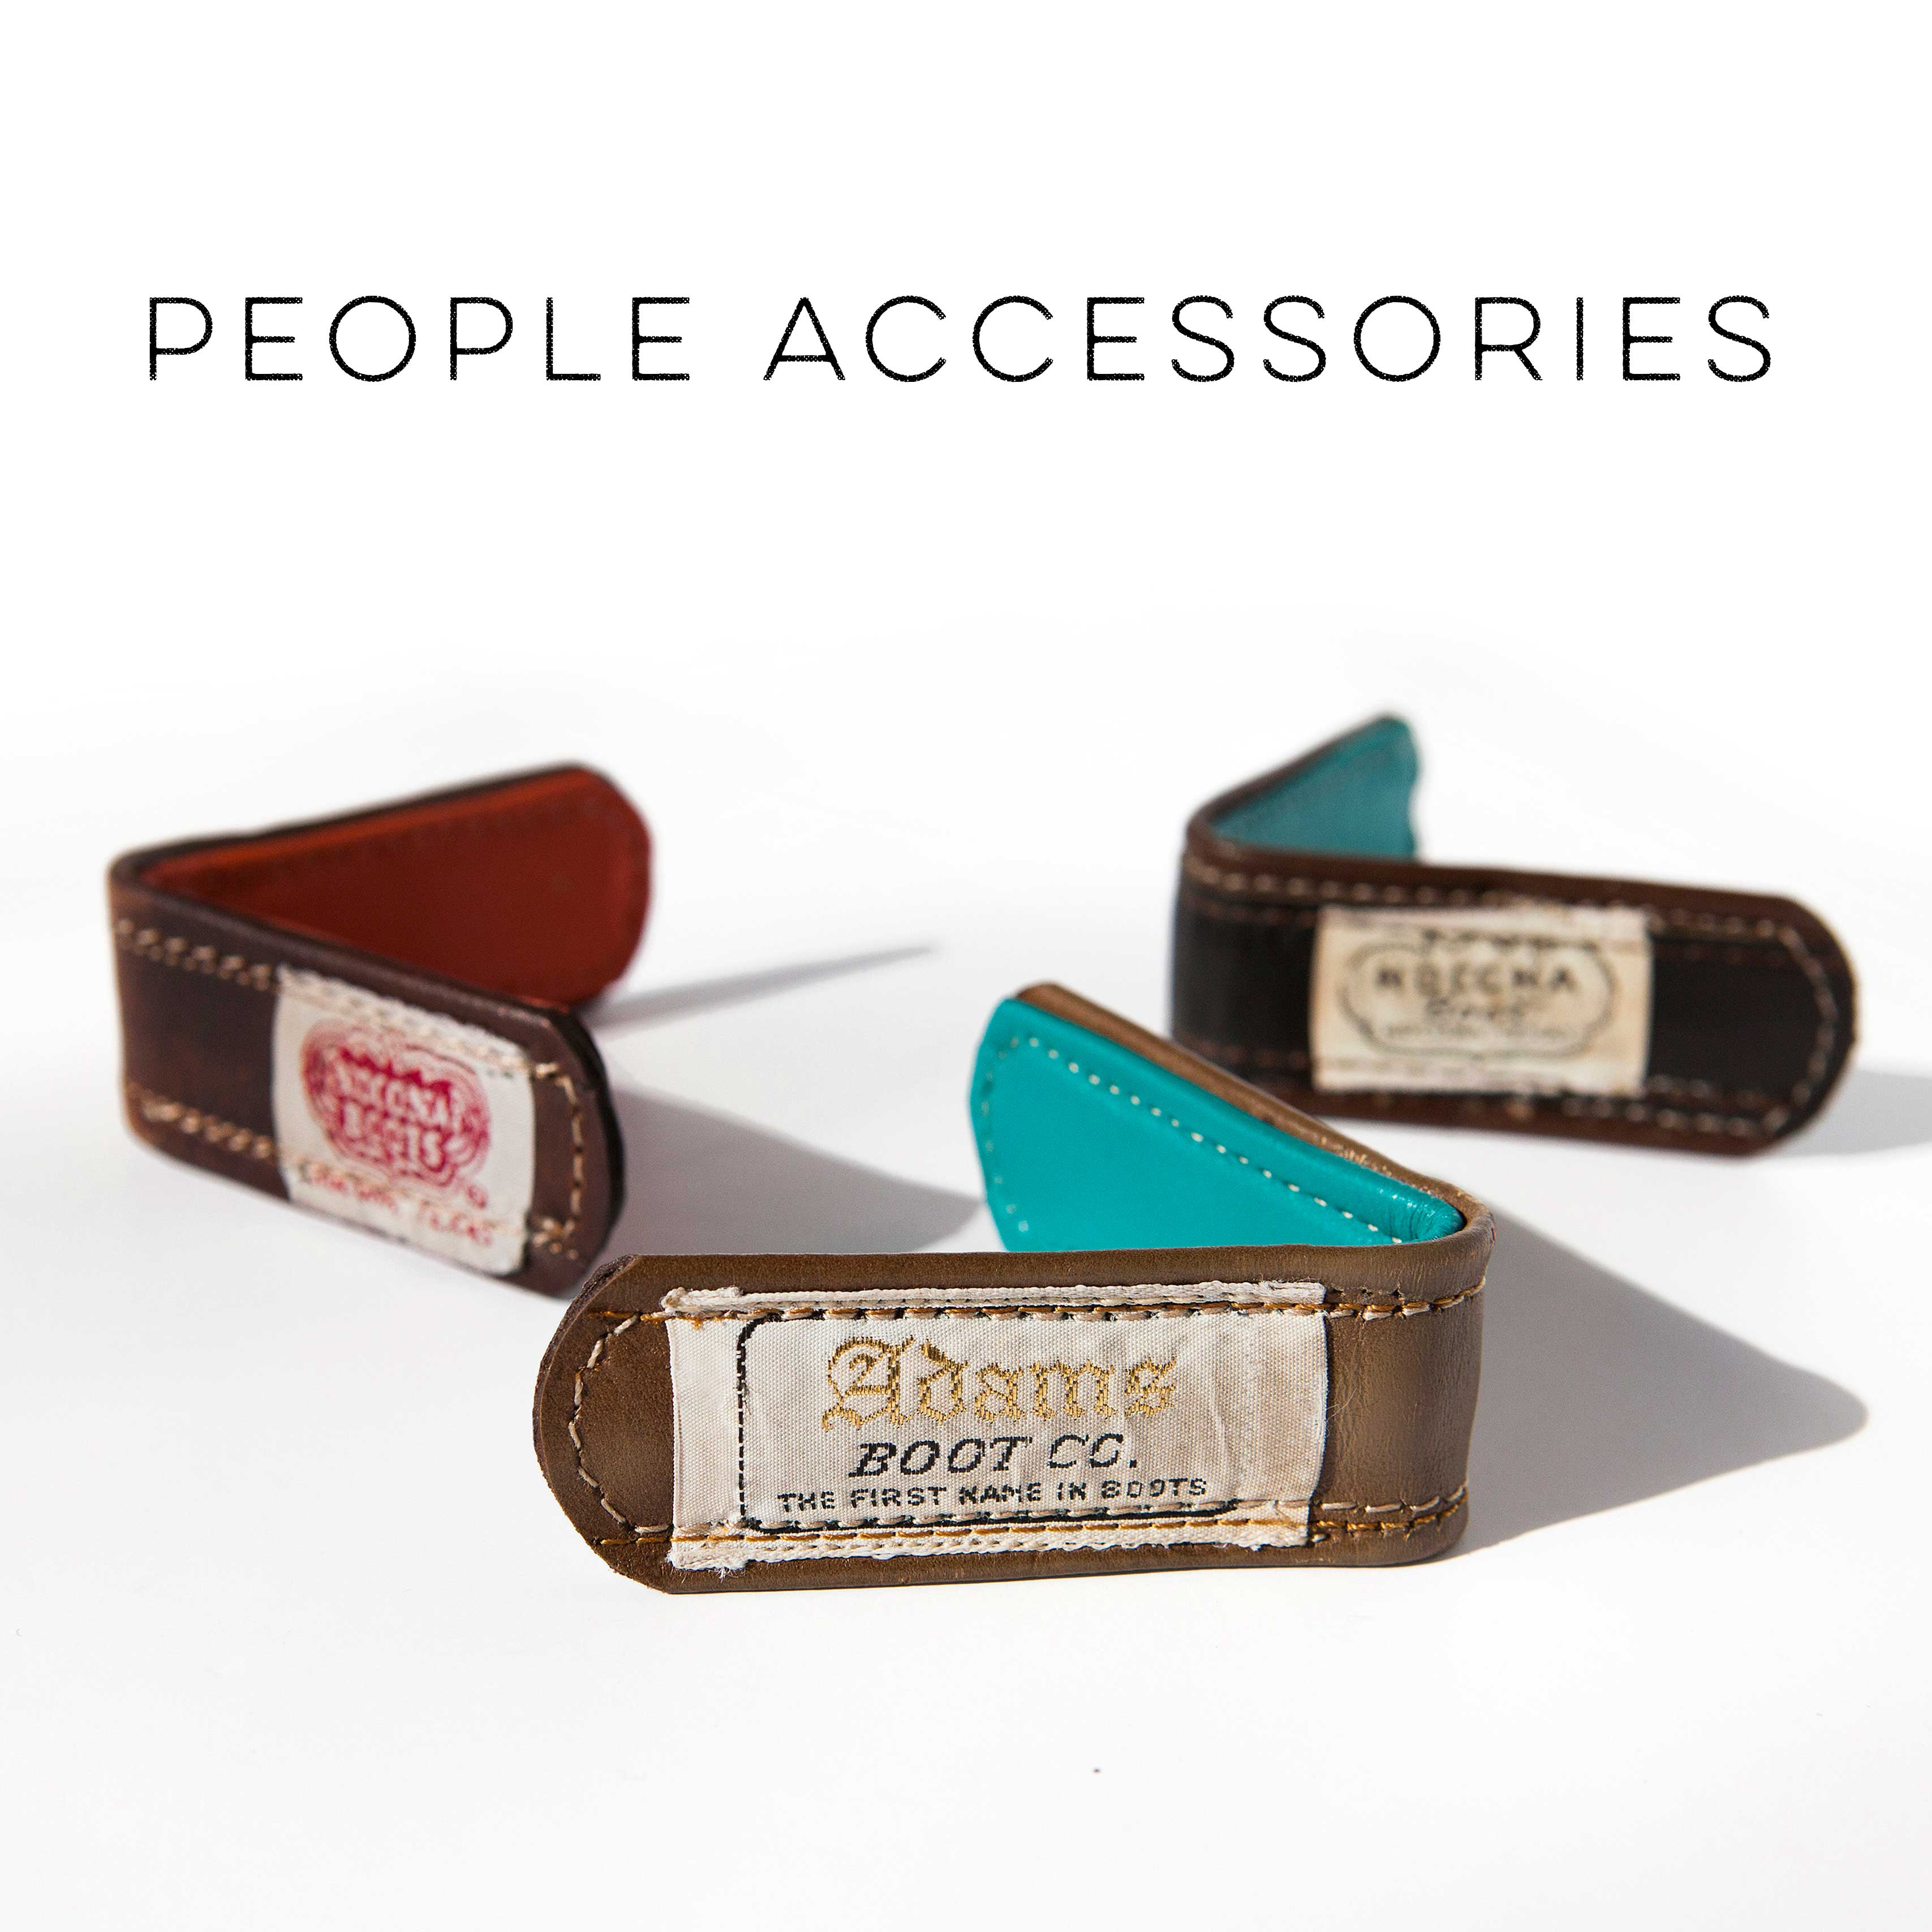 People Accessories